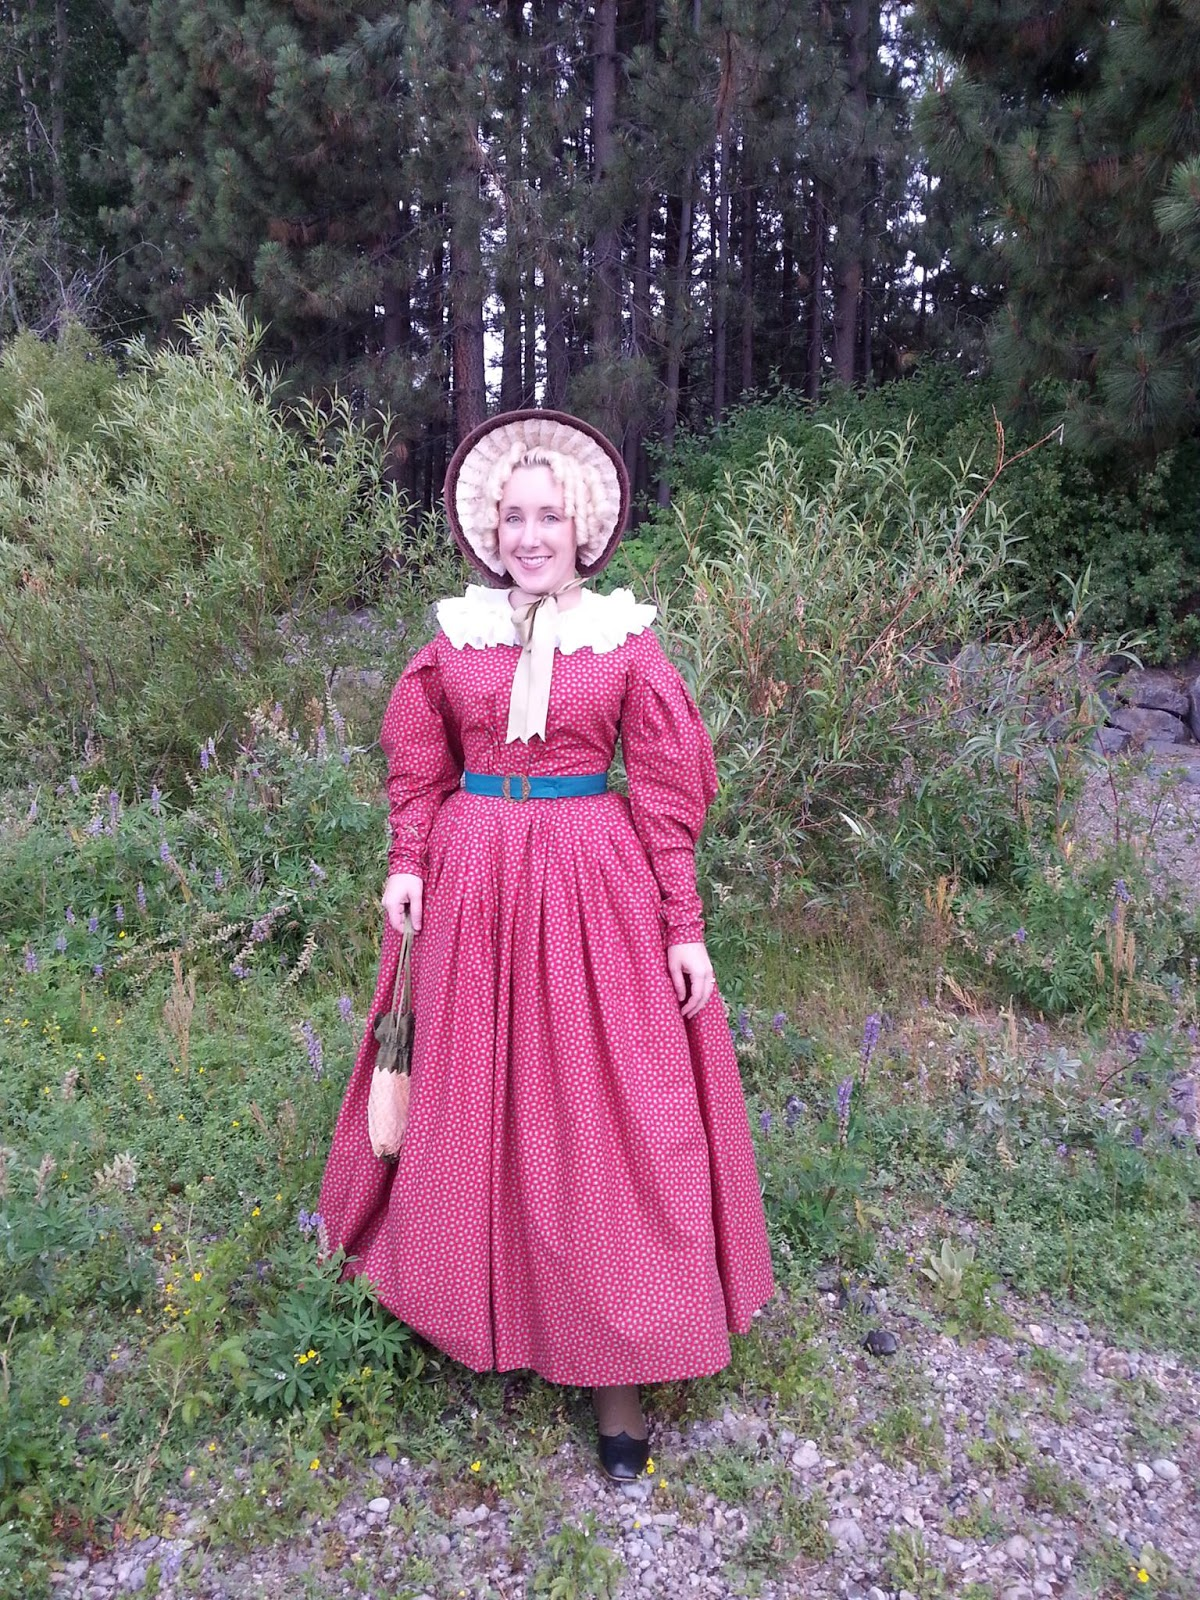 American Duchess: My First 1830s Dress - Complete!